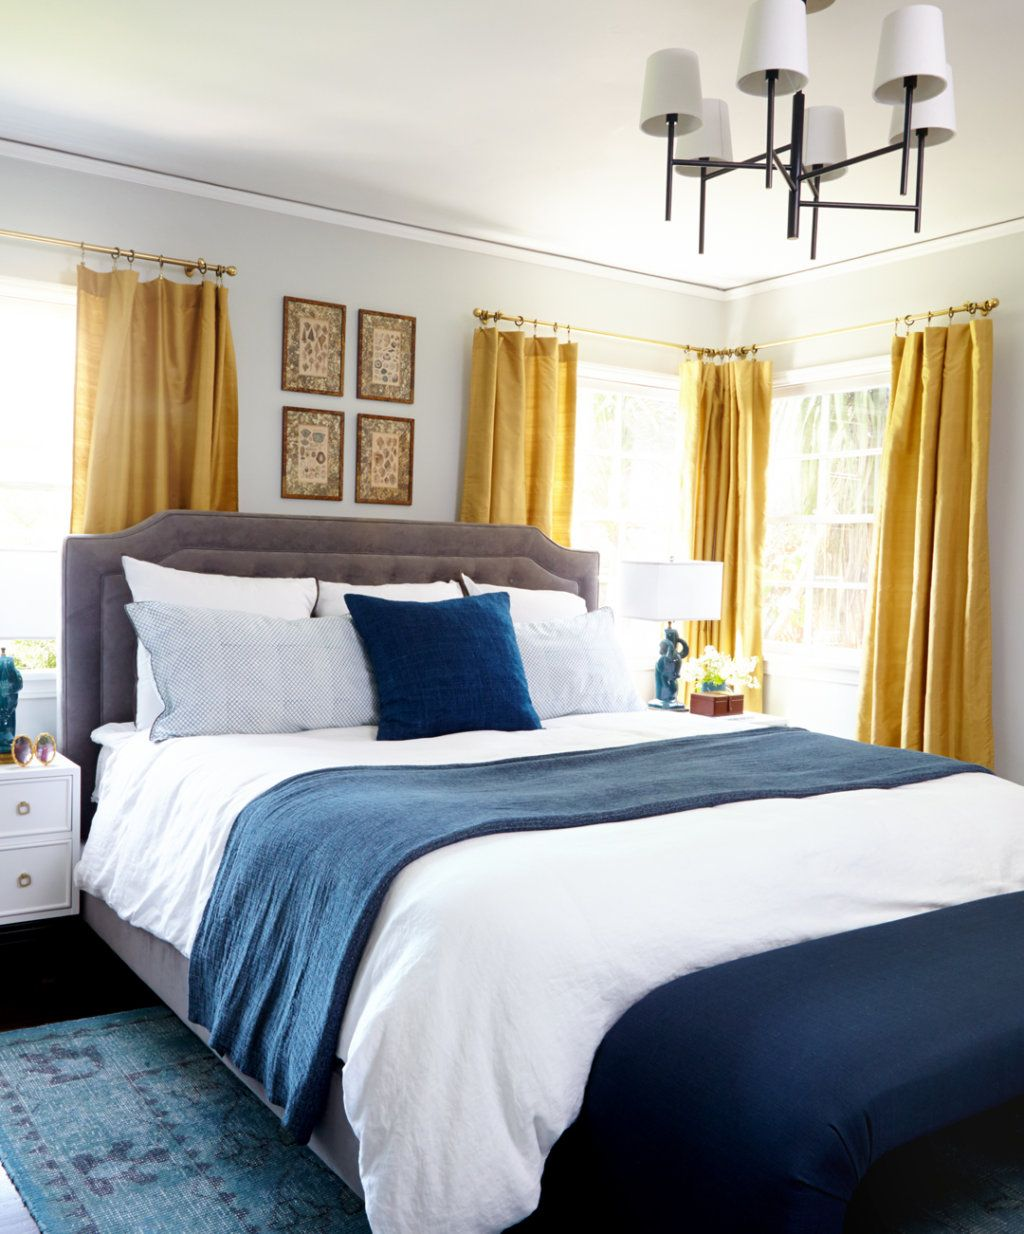 Mustard Yellow Curtains Give The Perfect Classic POP To This Pretty Bedroom